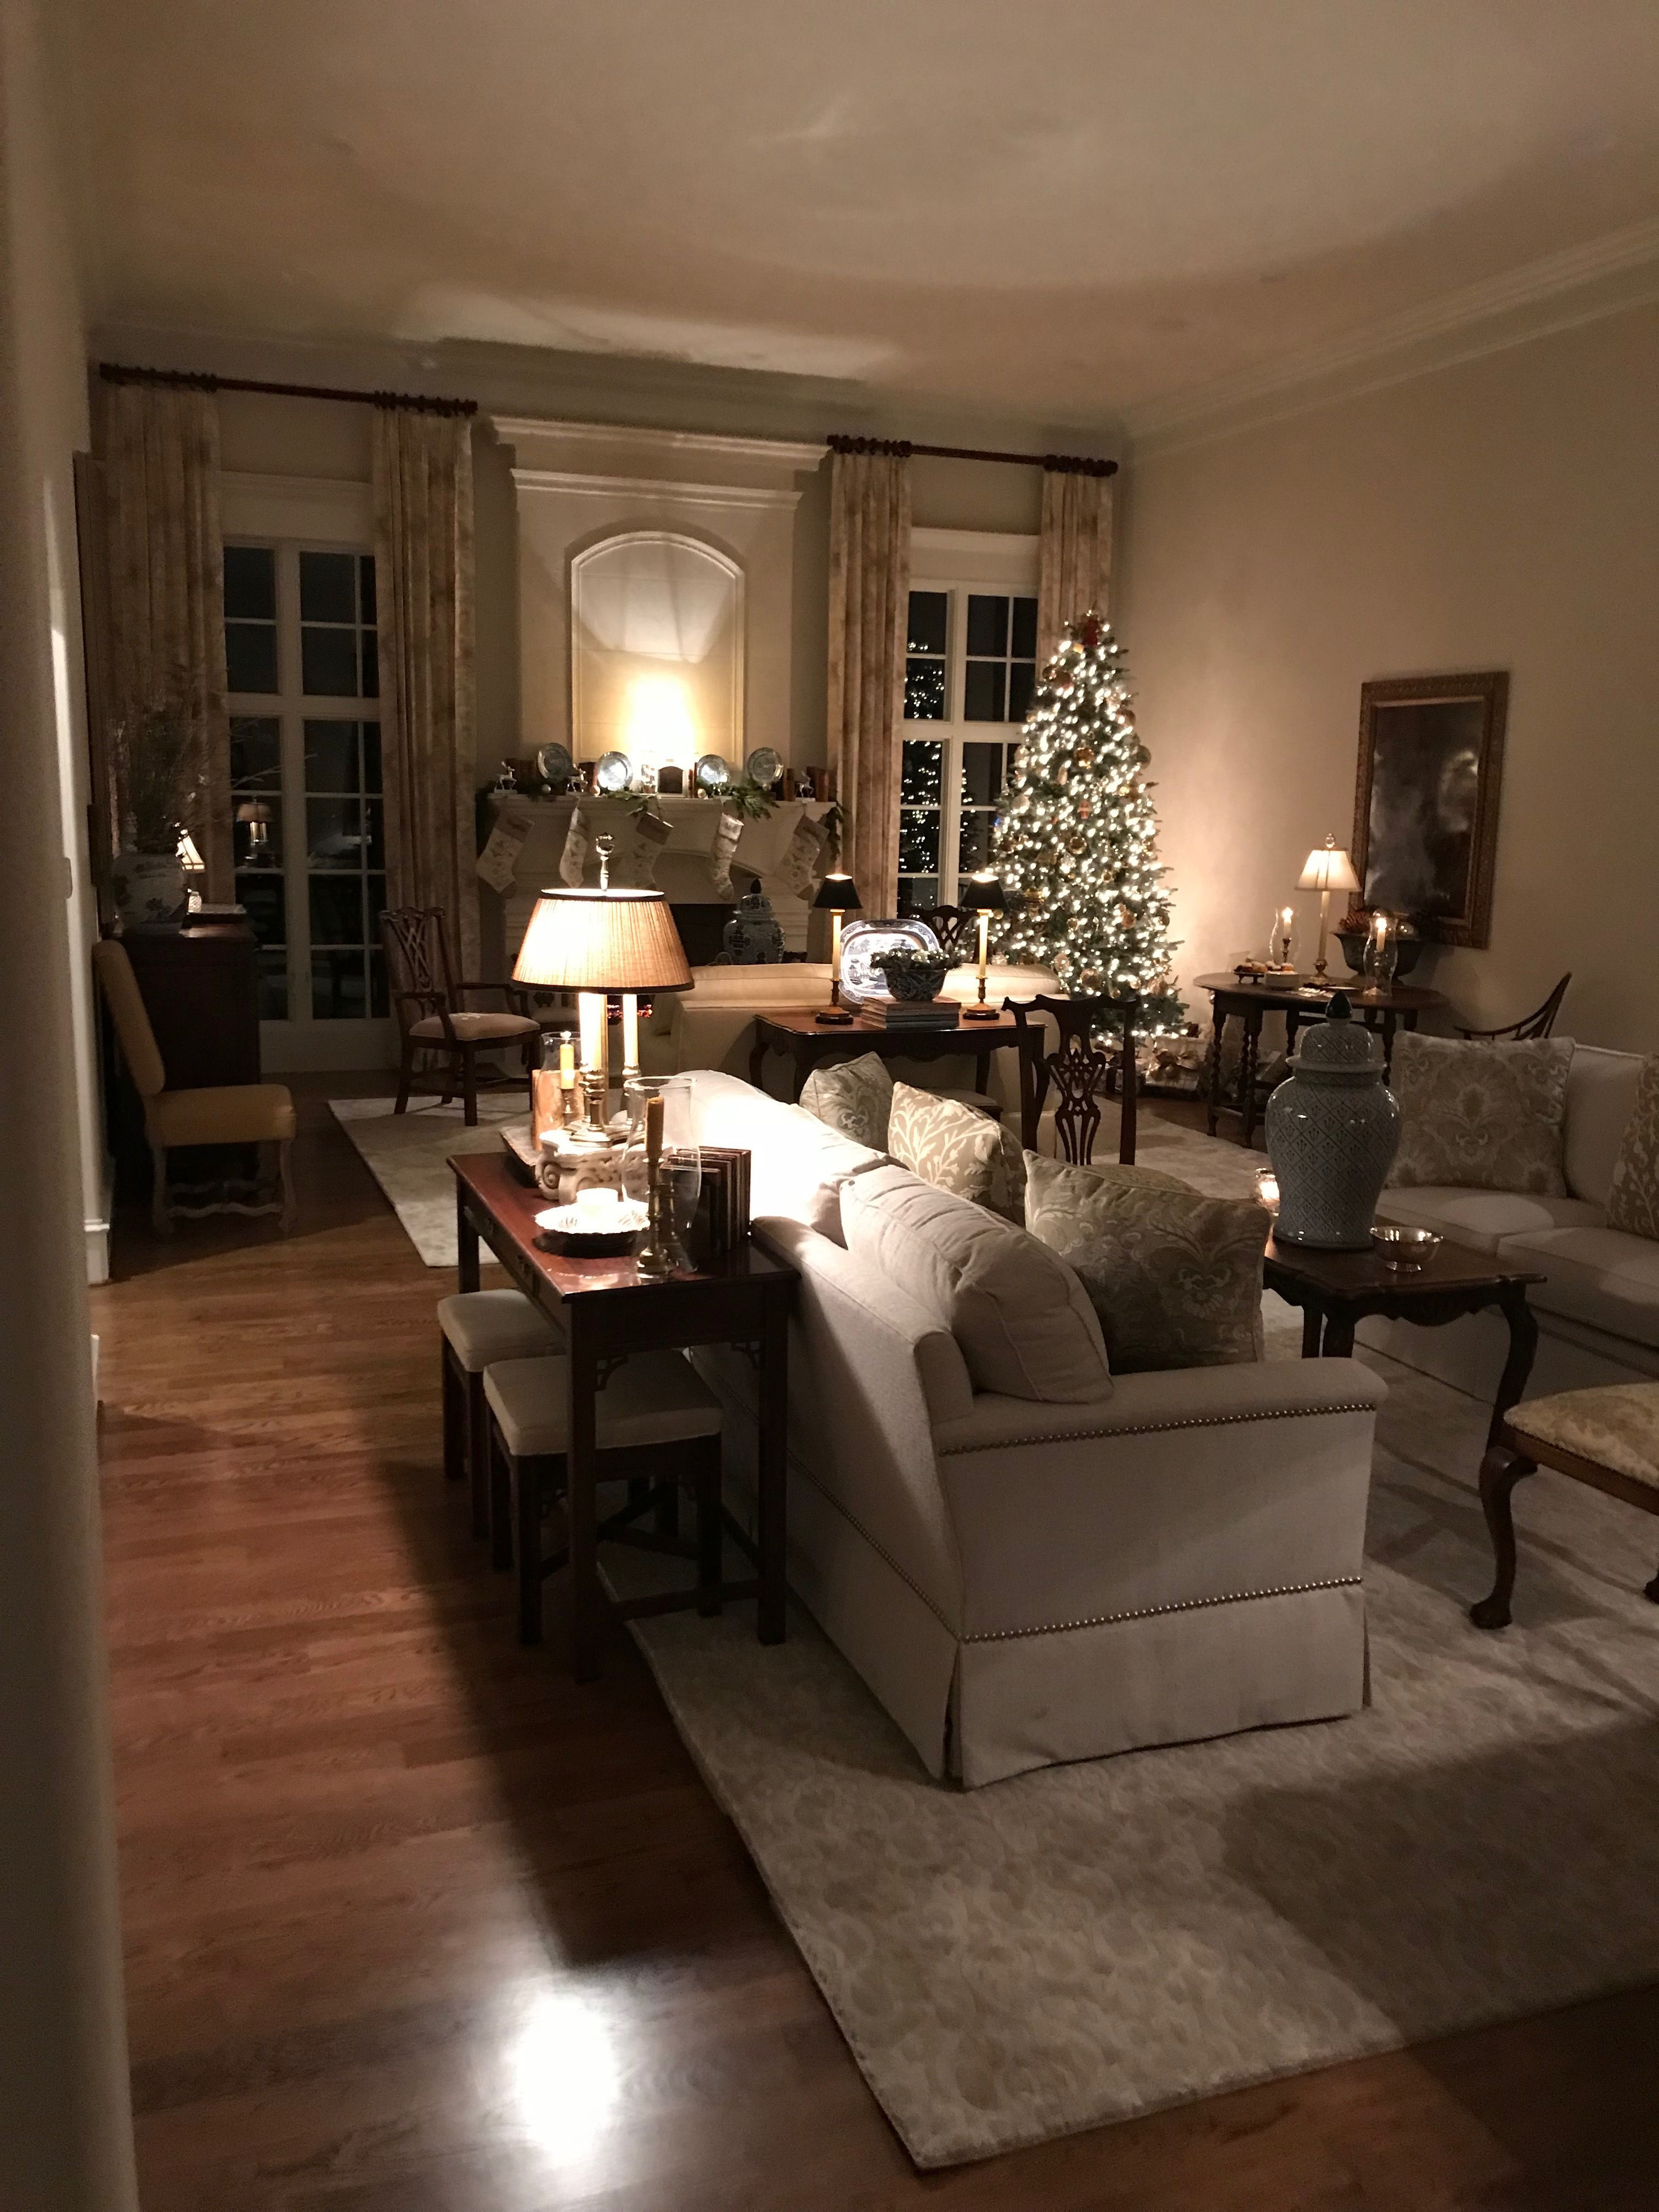 Living room night decor and please those windows facing the entrance road livingroomdesignideas formal also best decorating ideas  designs interior design rh pinterest